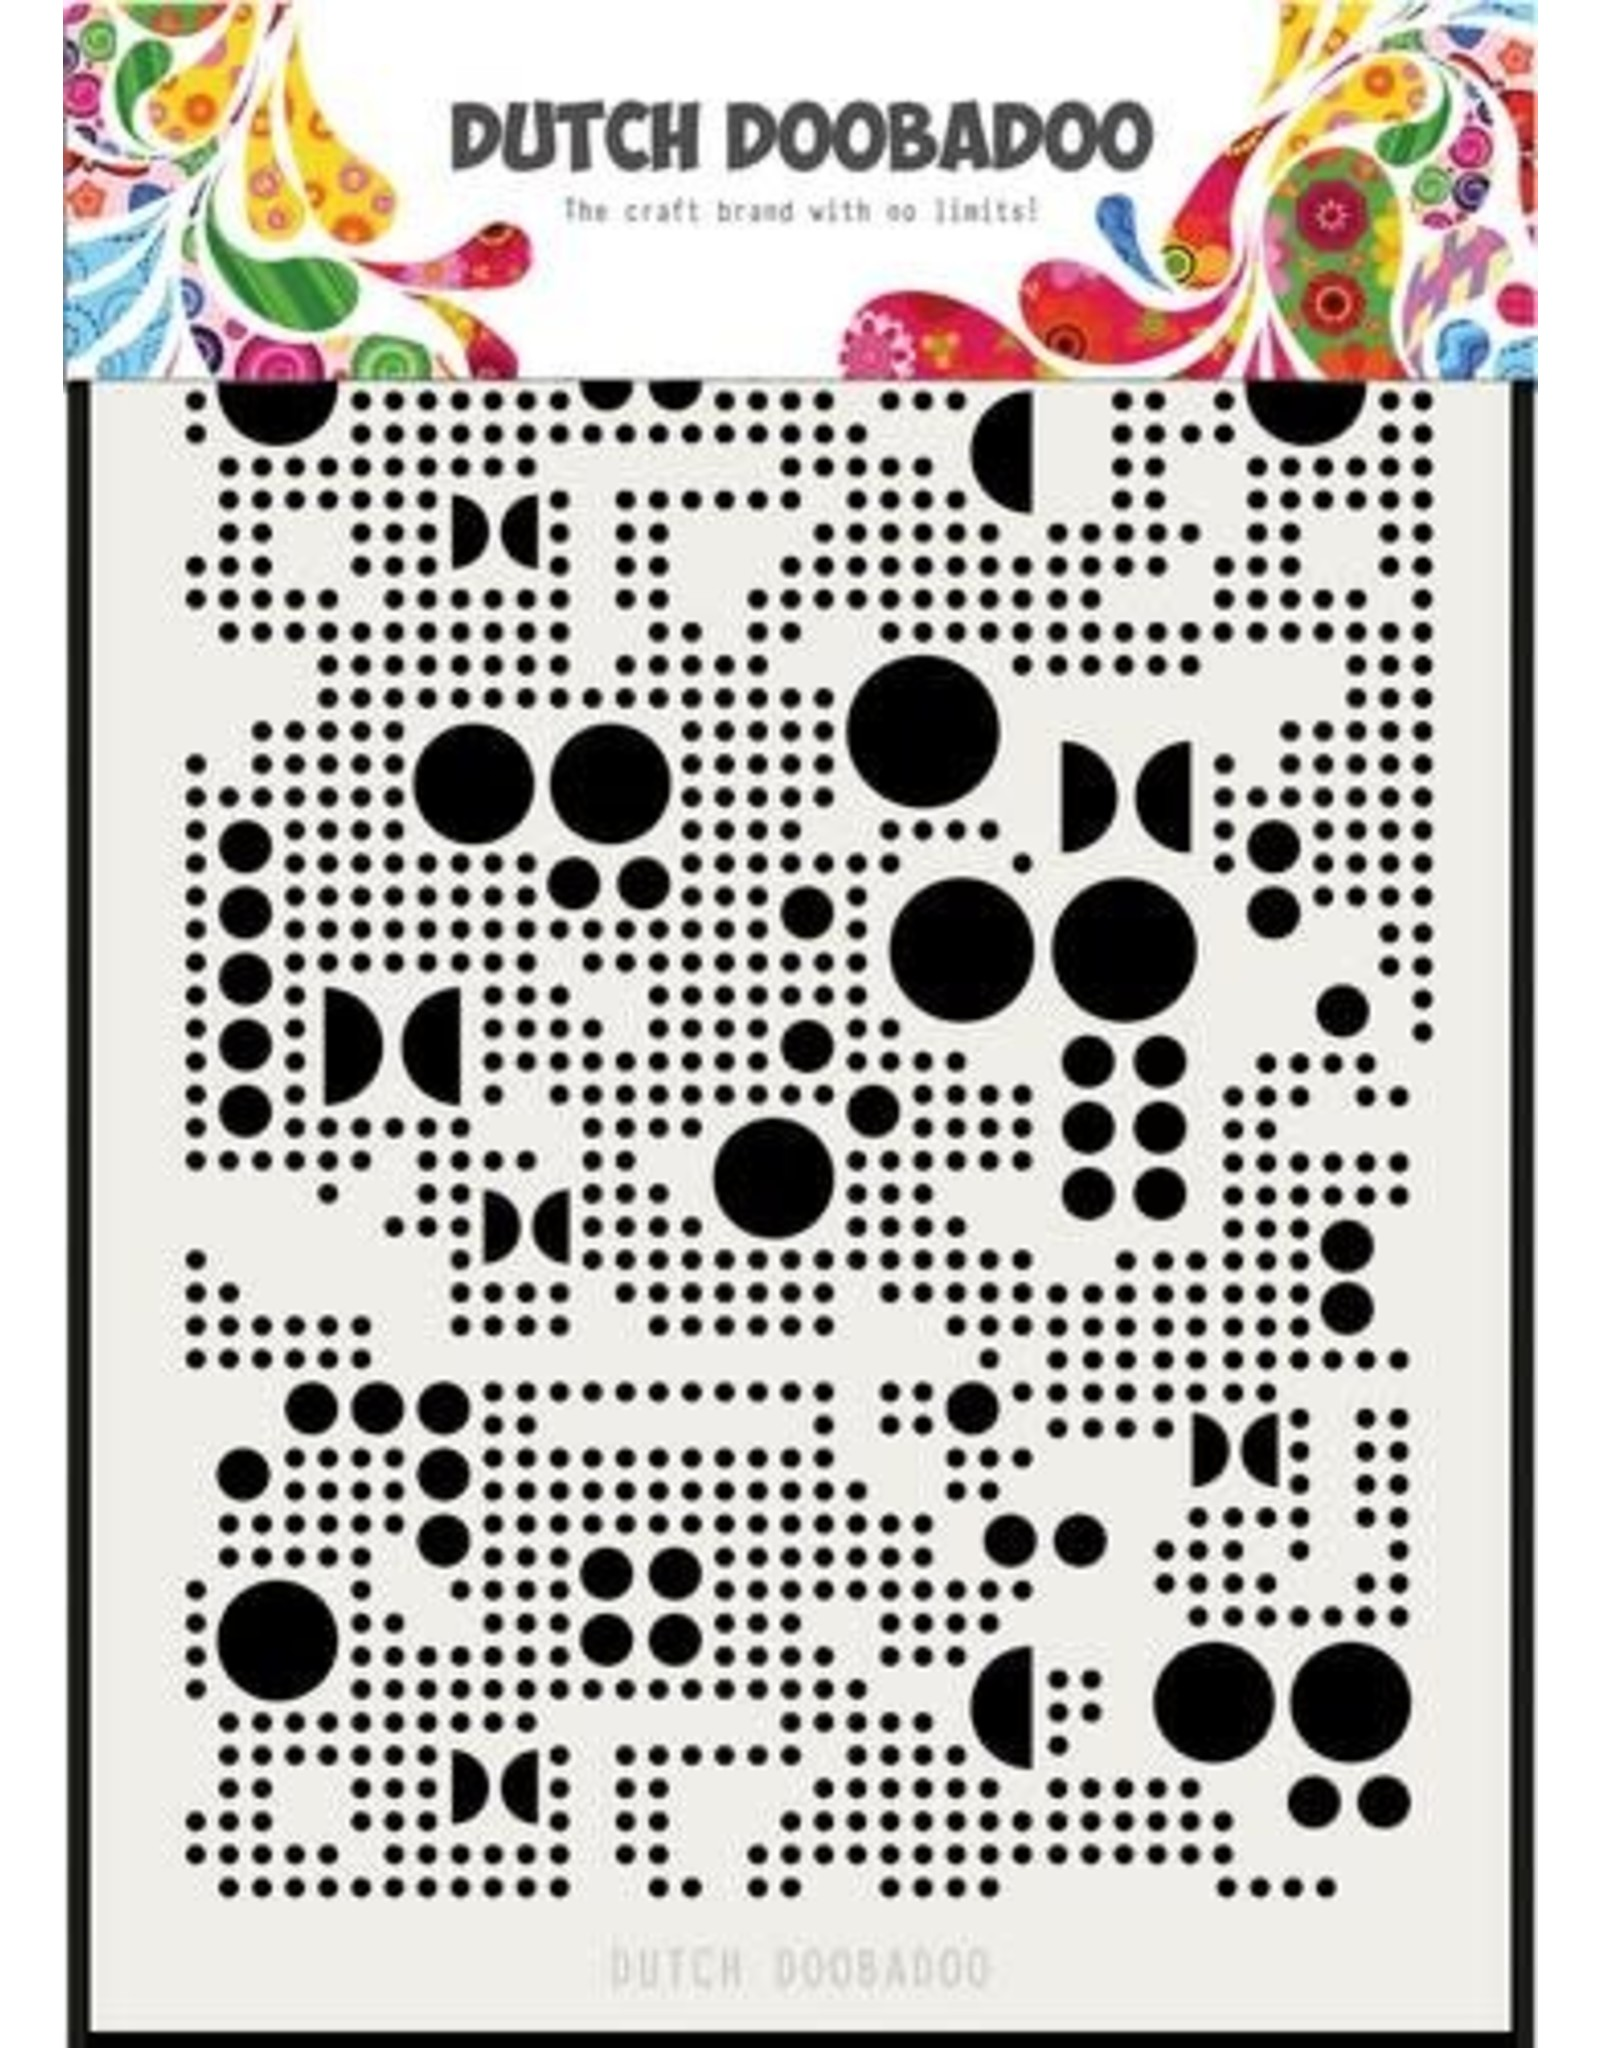 Dutch Doobadoo Dutch Doobadoo Dutch Mask Art Various Dots A5 470.715.133